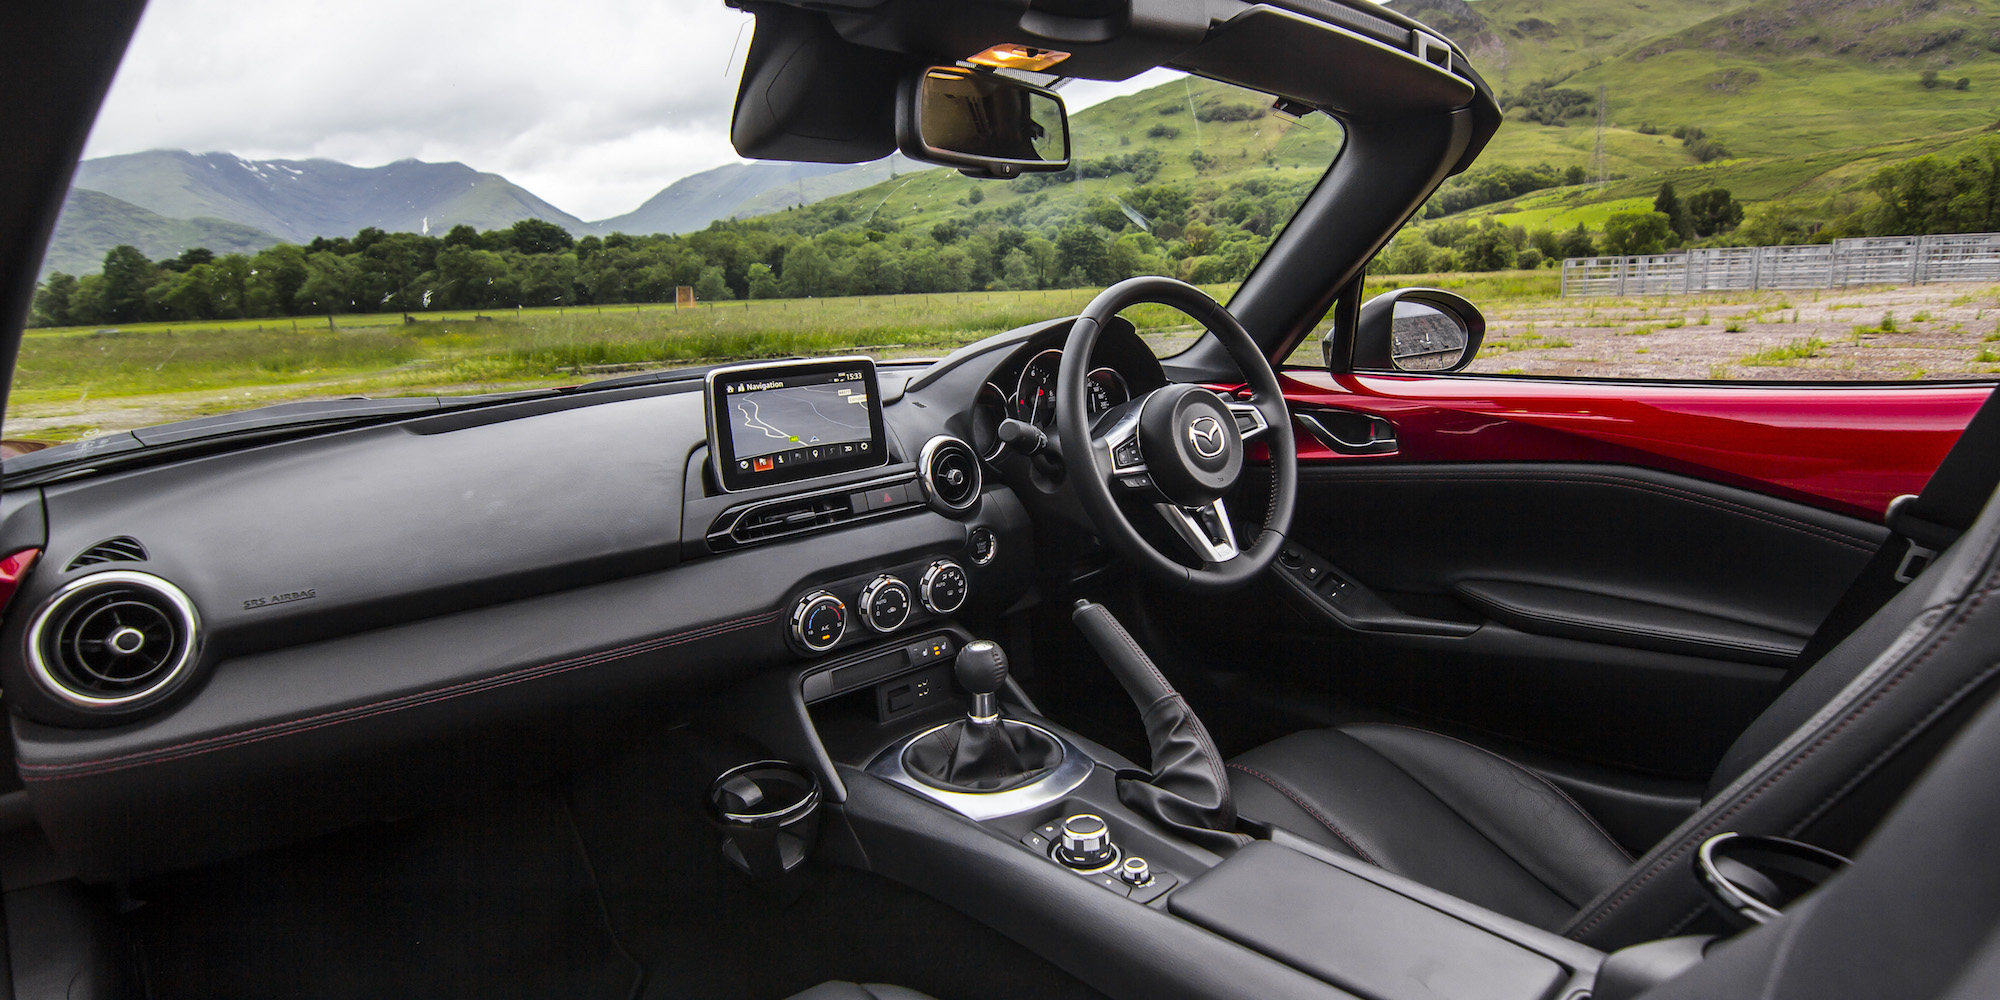 2016 Mazda Mx 5 Interior Preview (View 21 of 31)